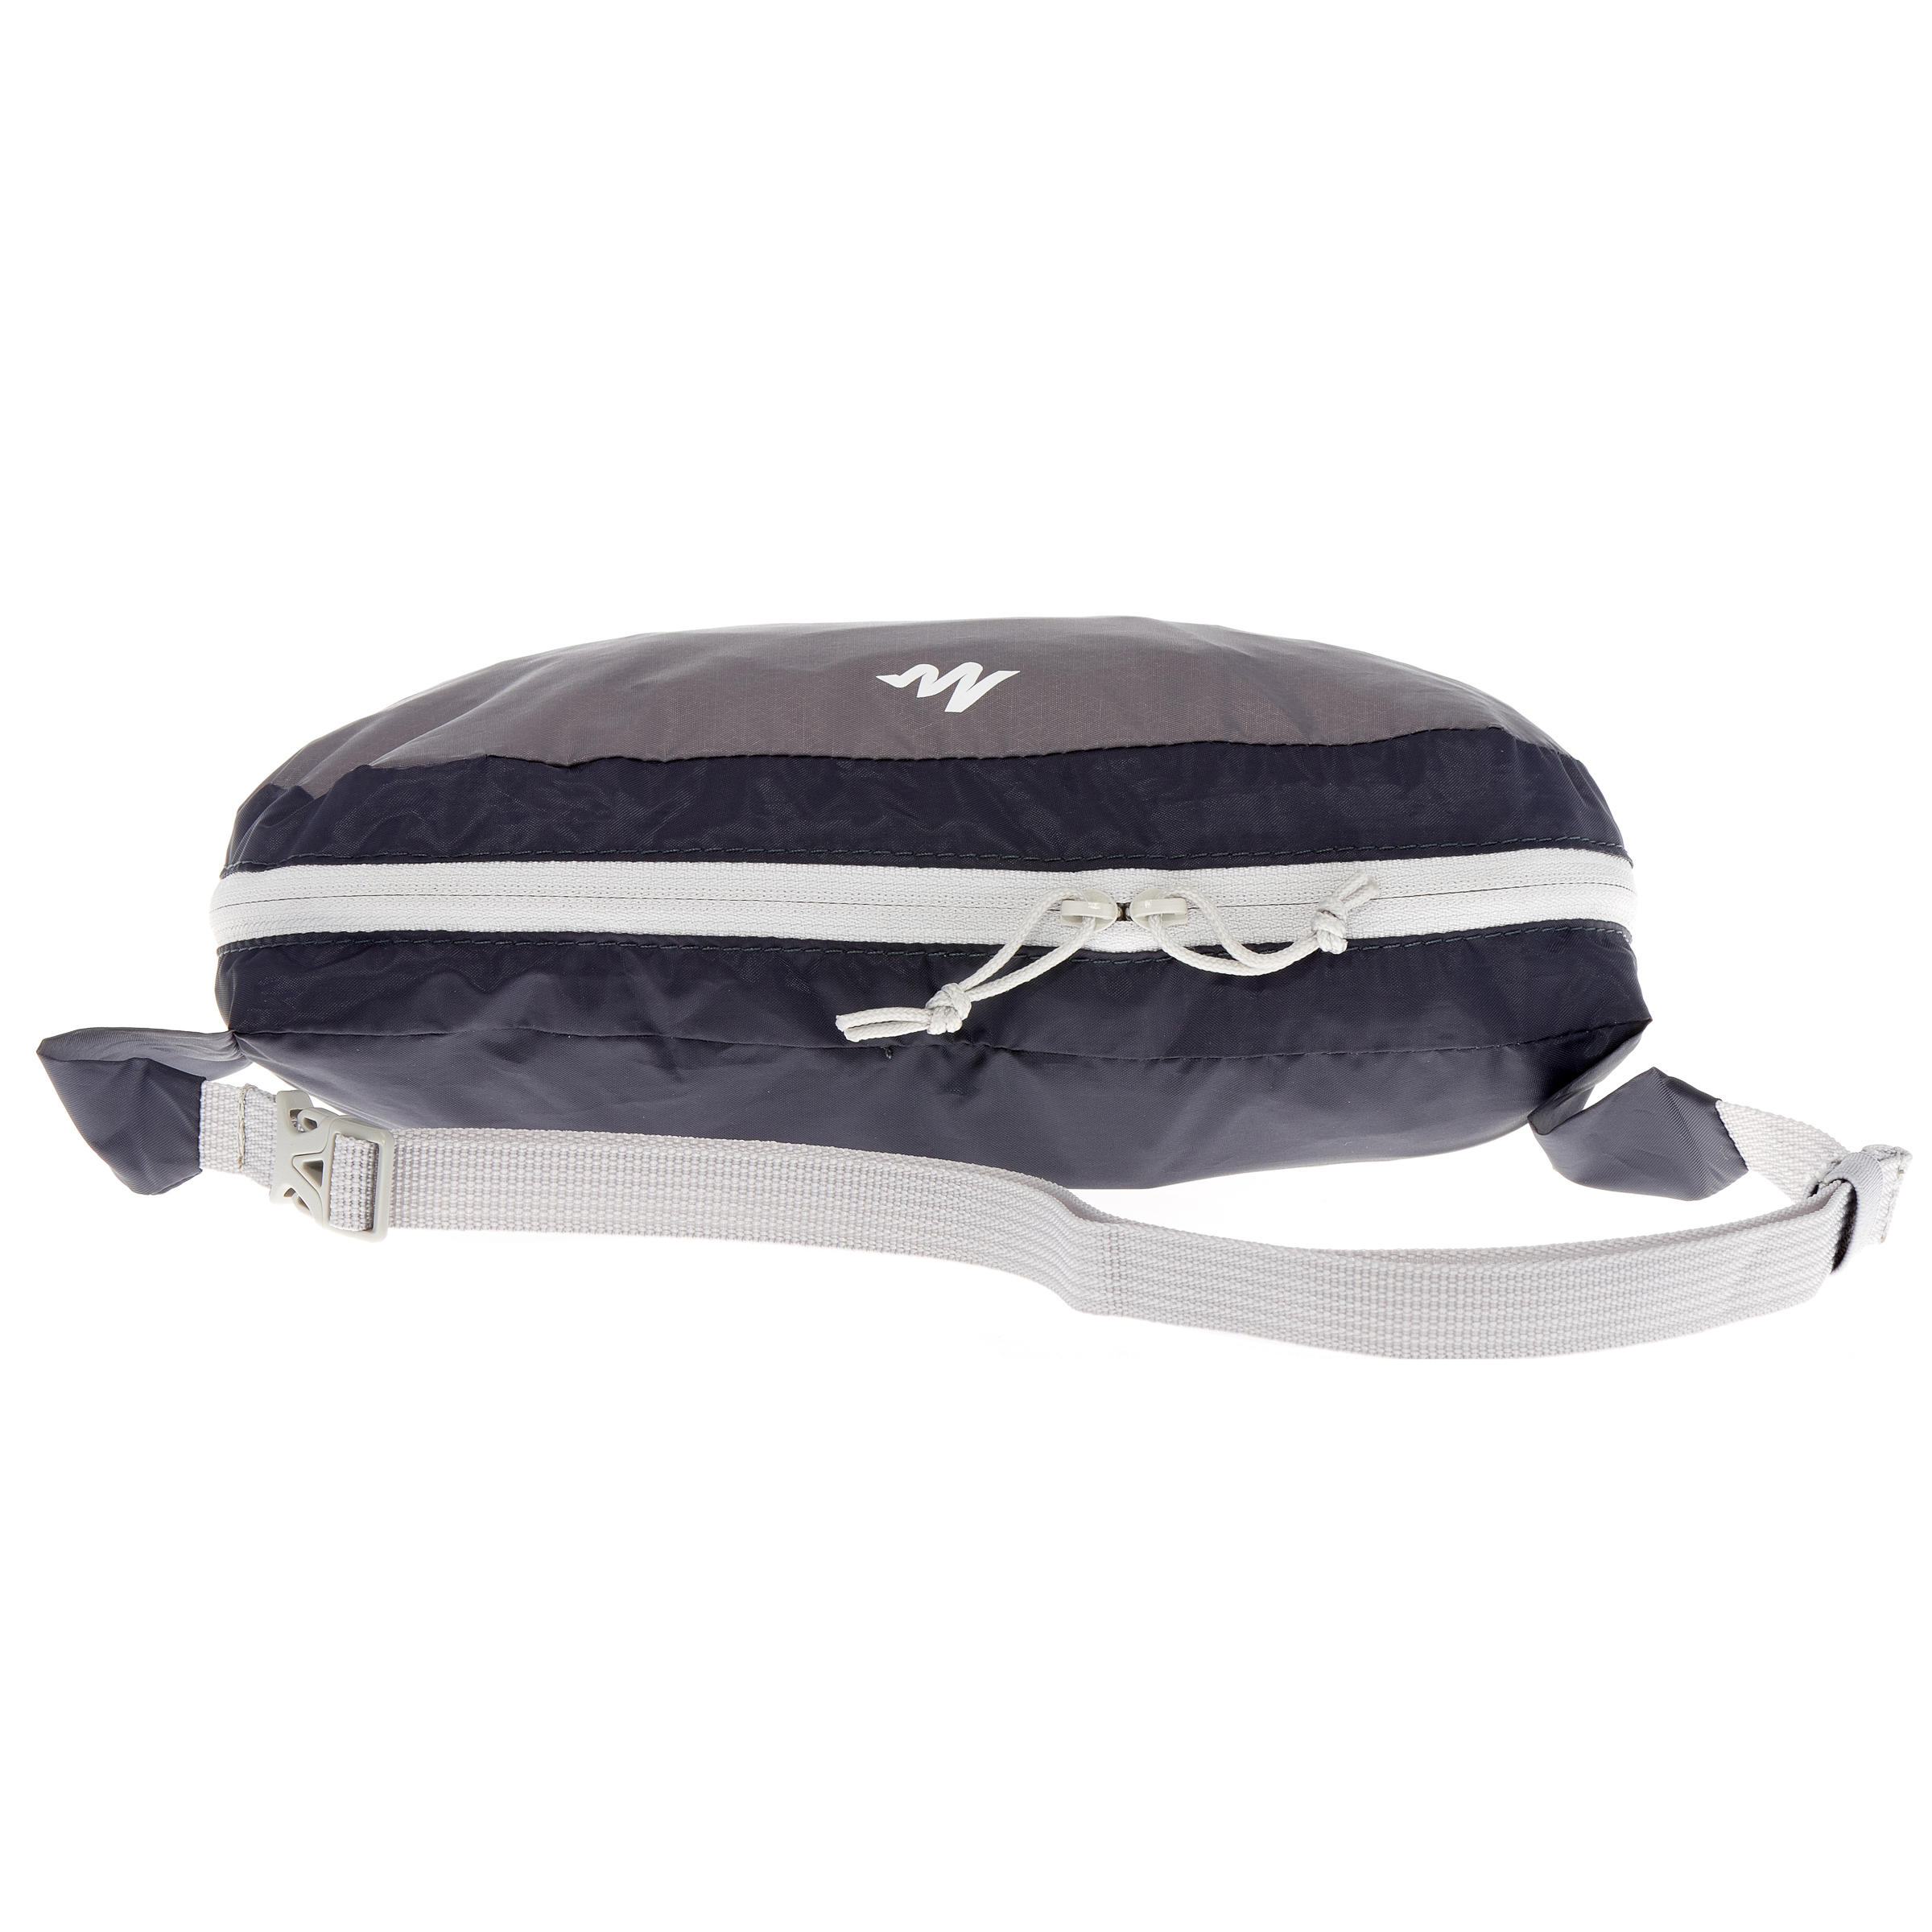 Travel Ultra-compact Bumbag - Grey